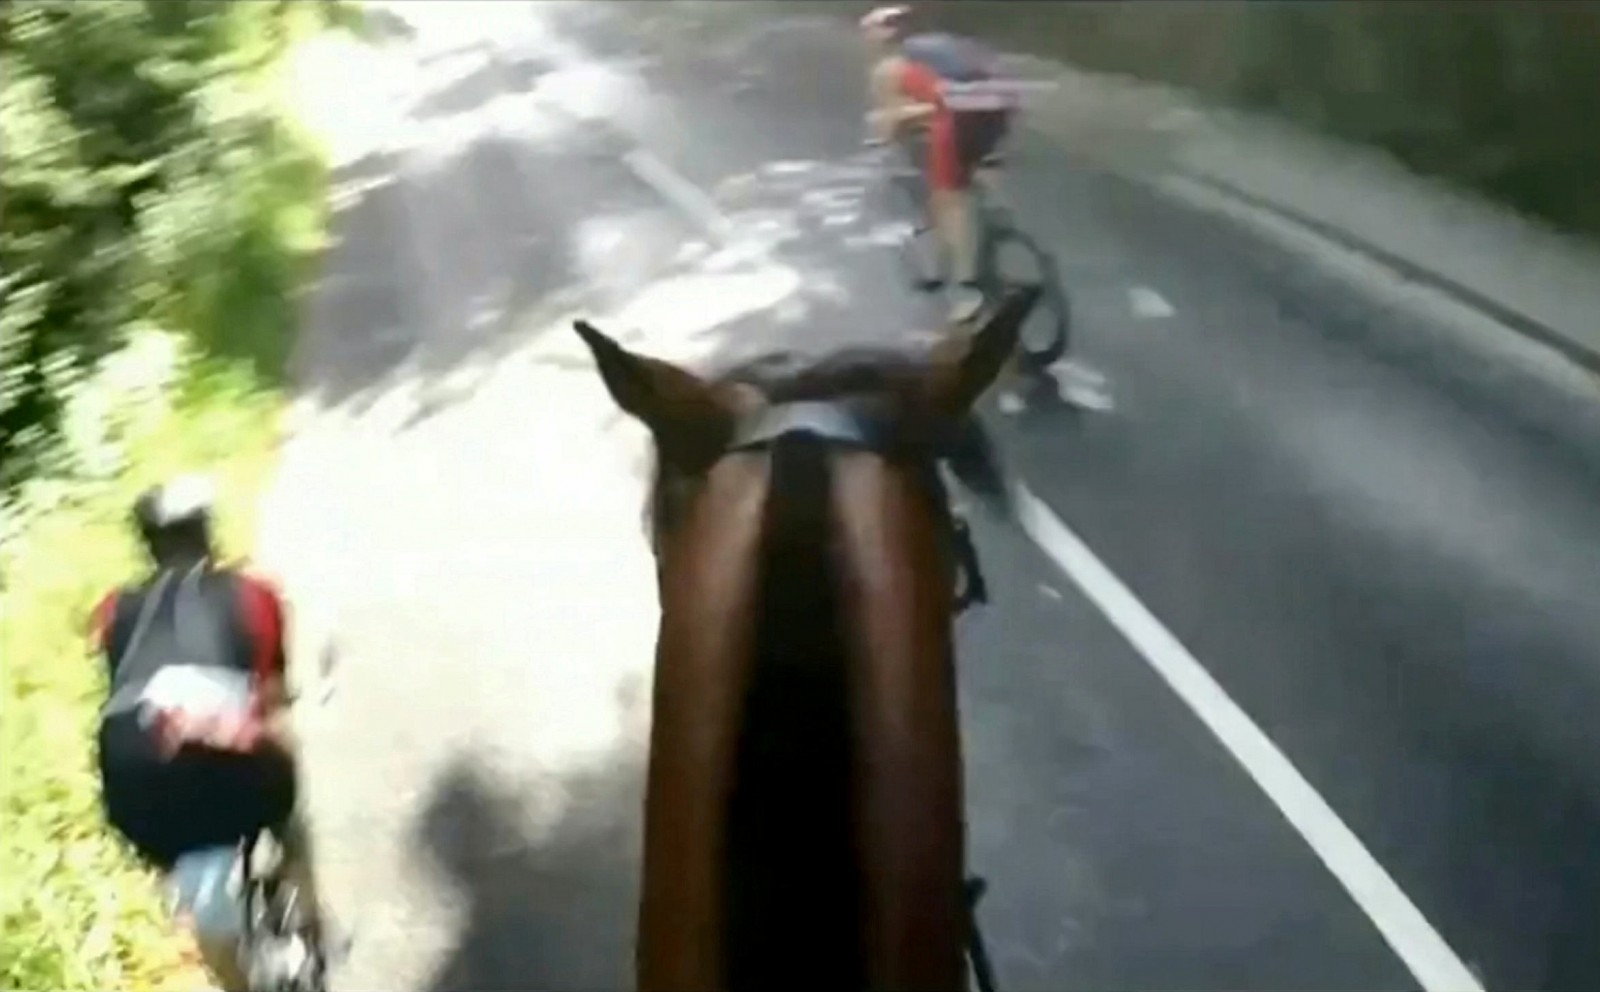 Cyclist Landed With Hefty Fine And A Ban From Iconic Triathlon After High-Speed Collision - While Undertaking A HORSE